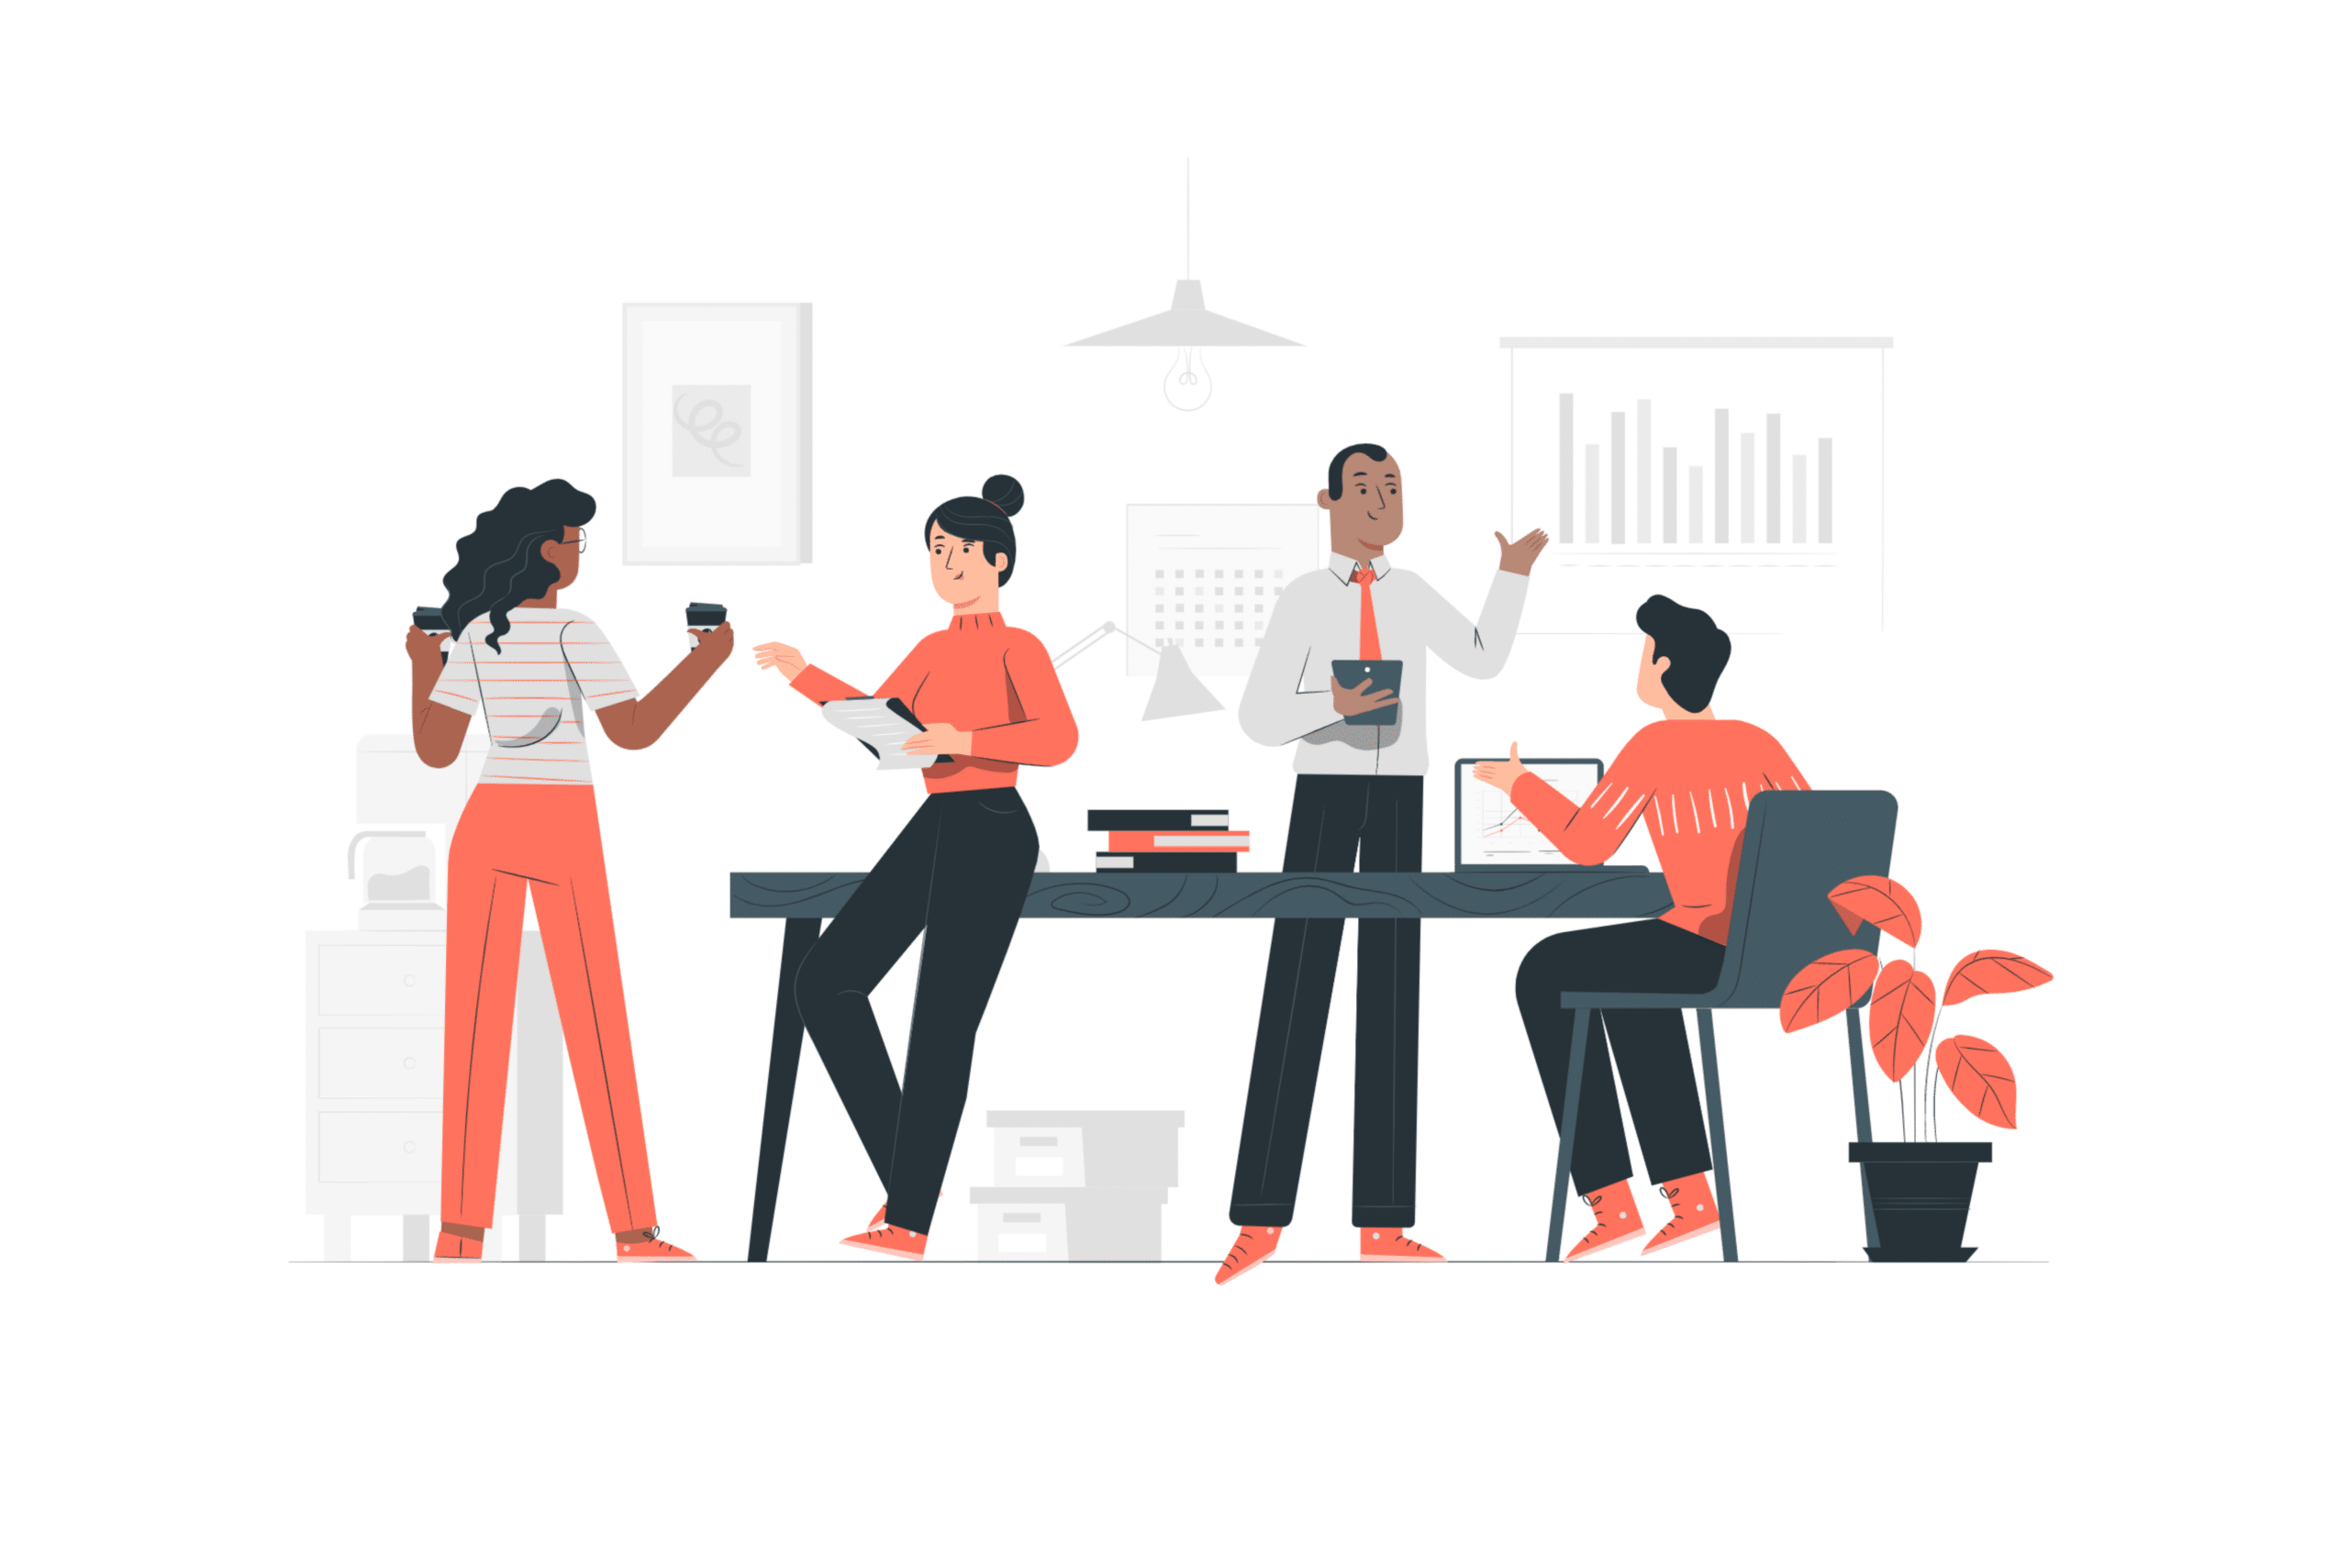 Illustration about a crowded office space